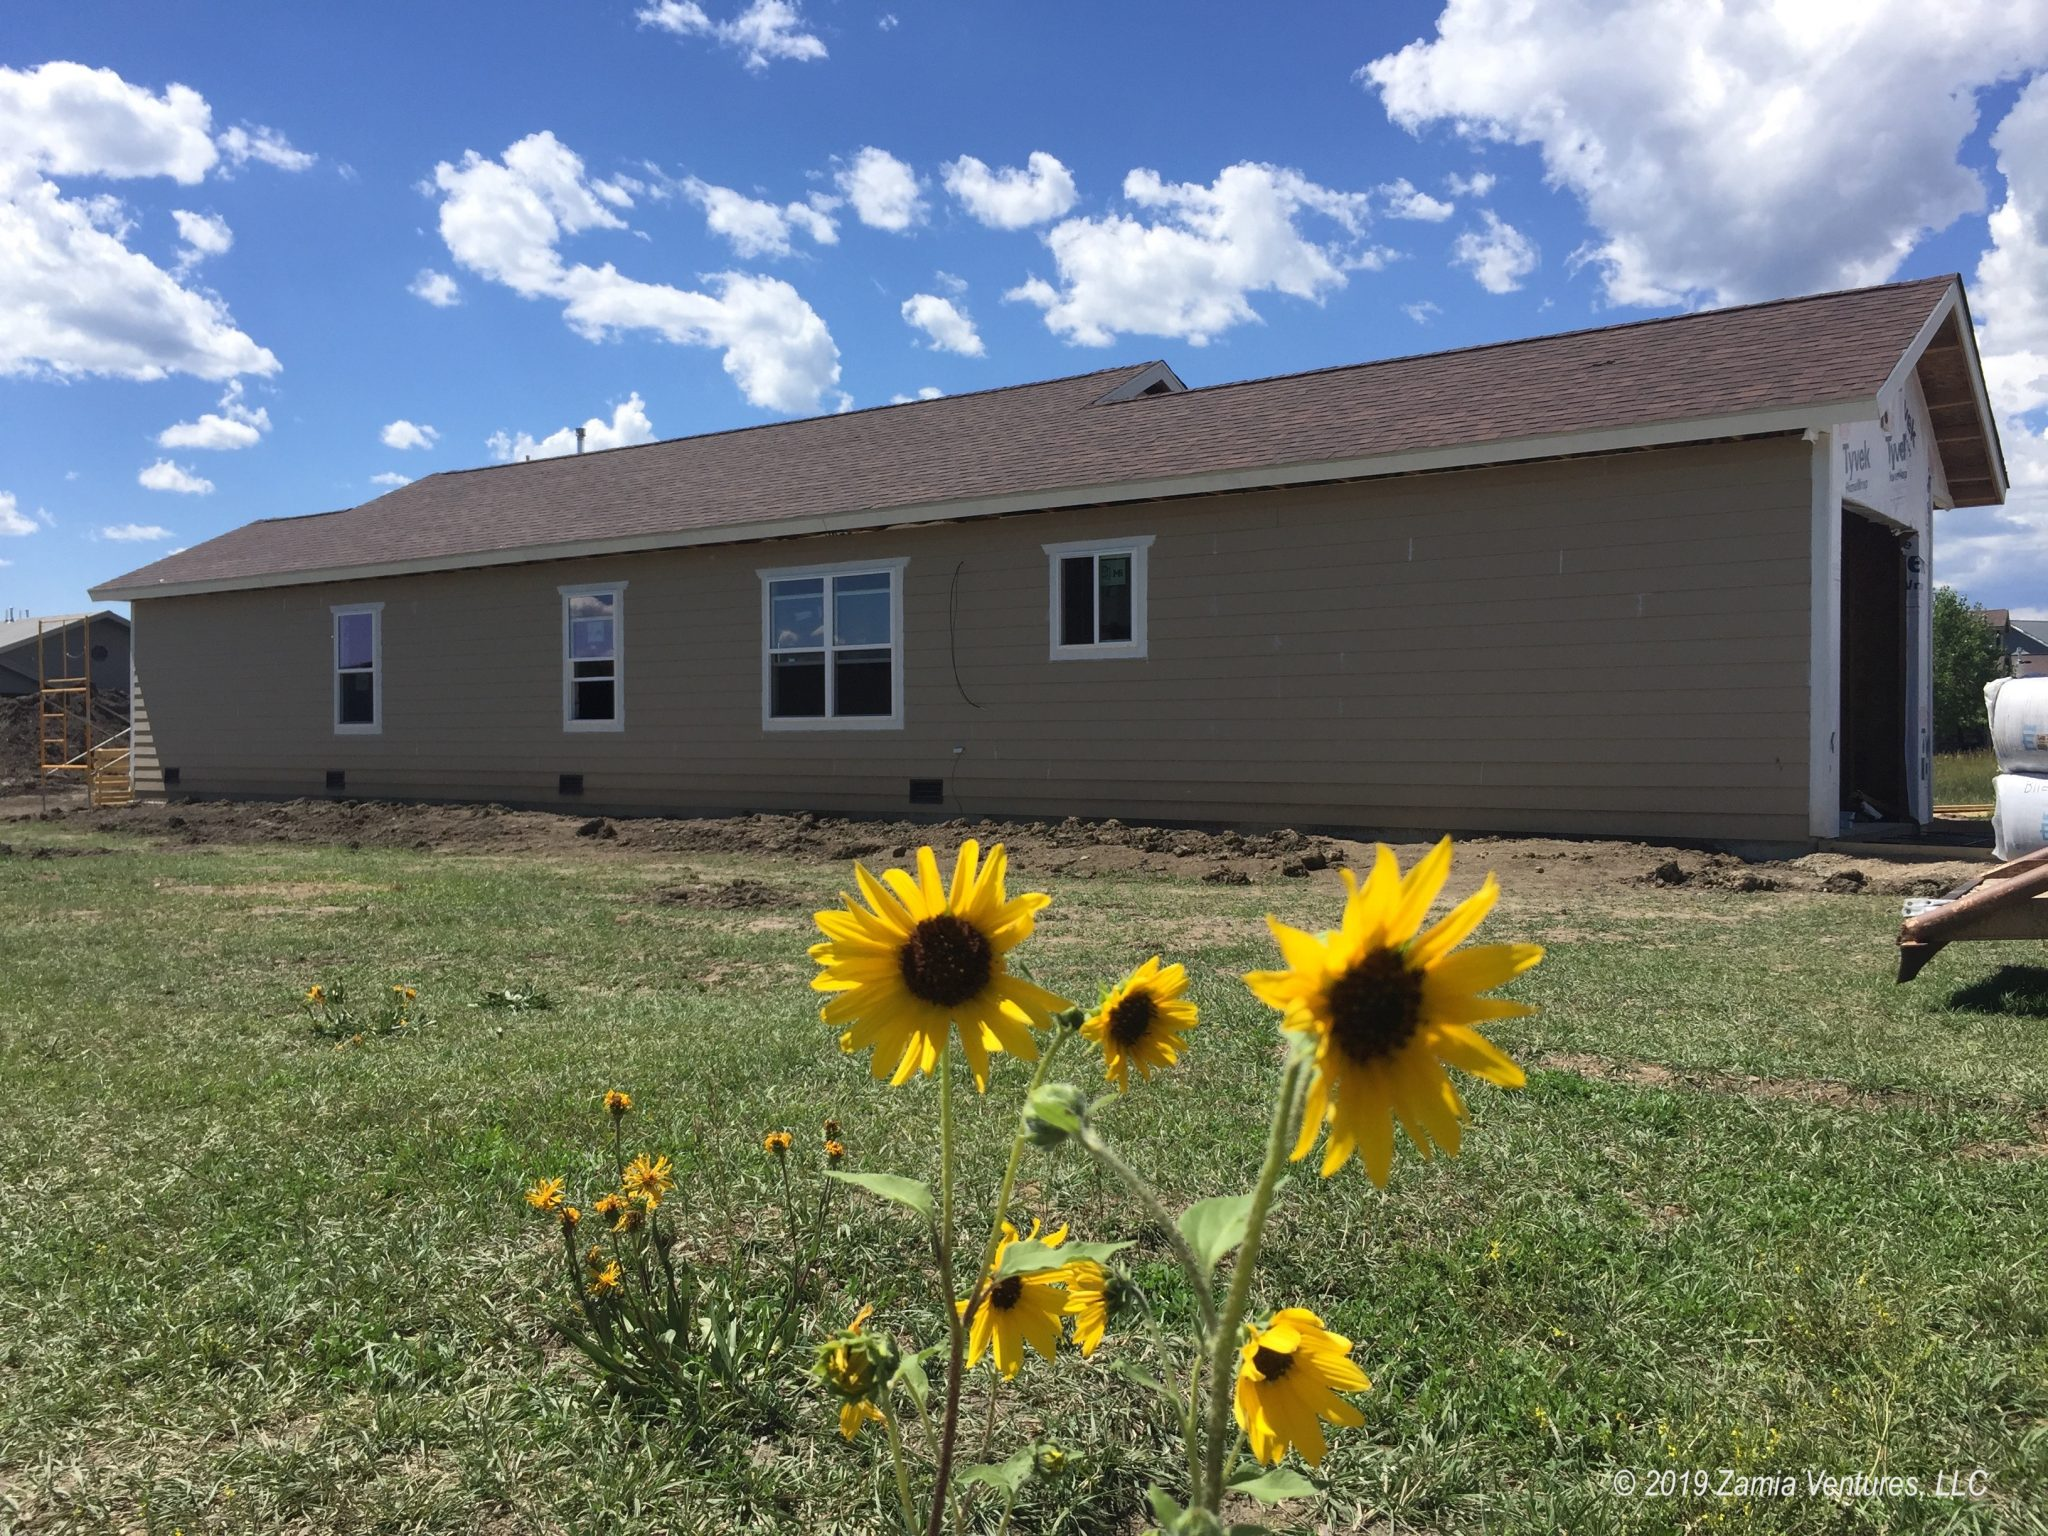 Care-A-Vanning Redux in Pagosa Springs